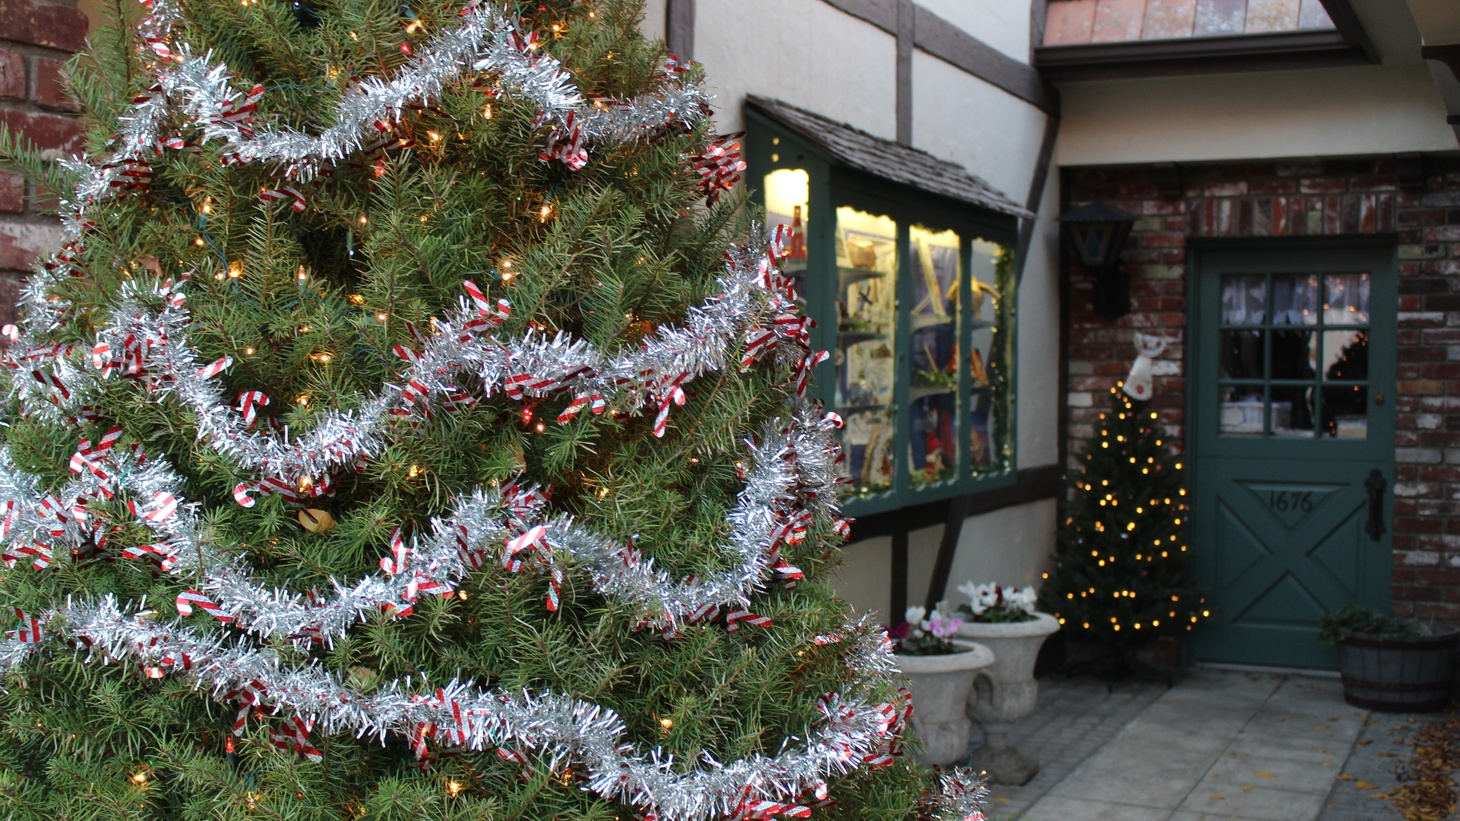 Christmas trees line the streets of downtown Solvang.